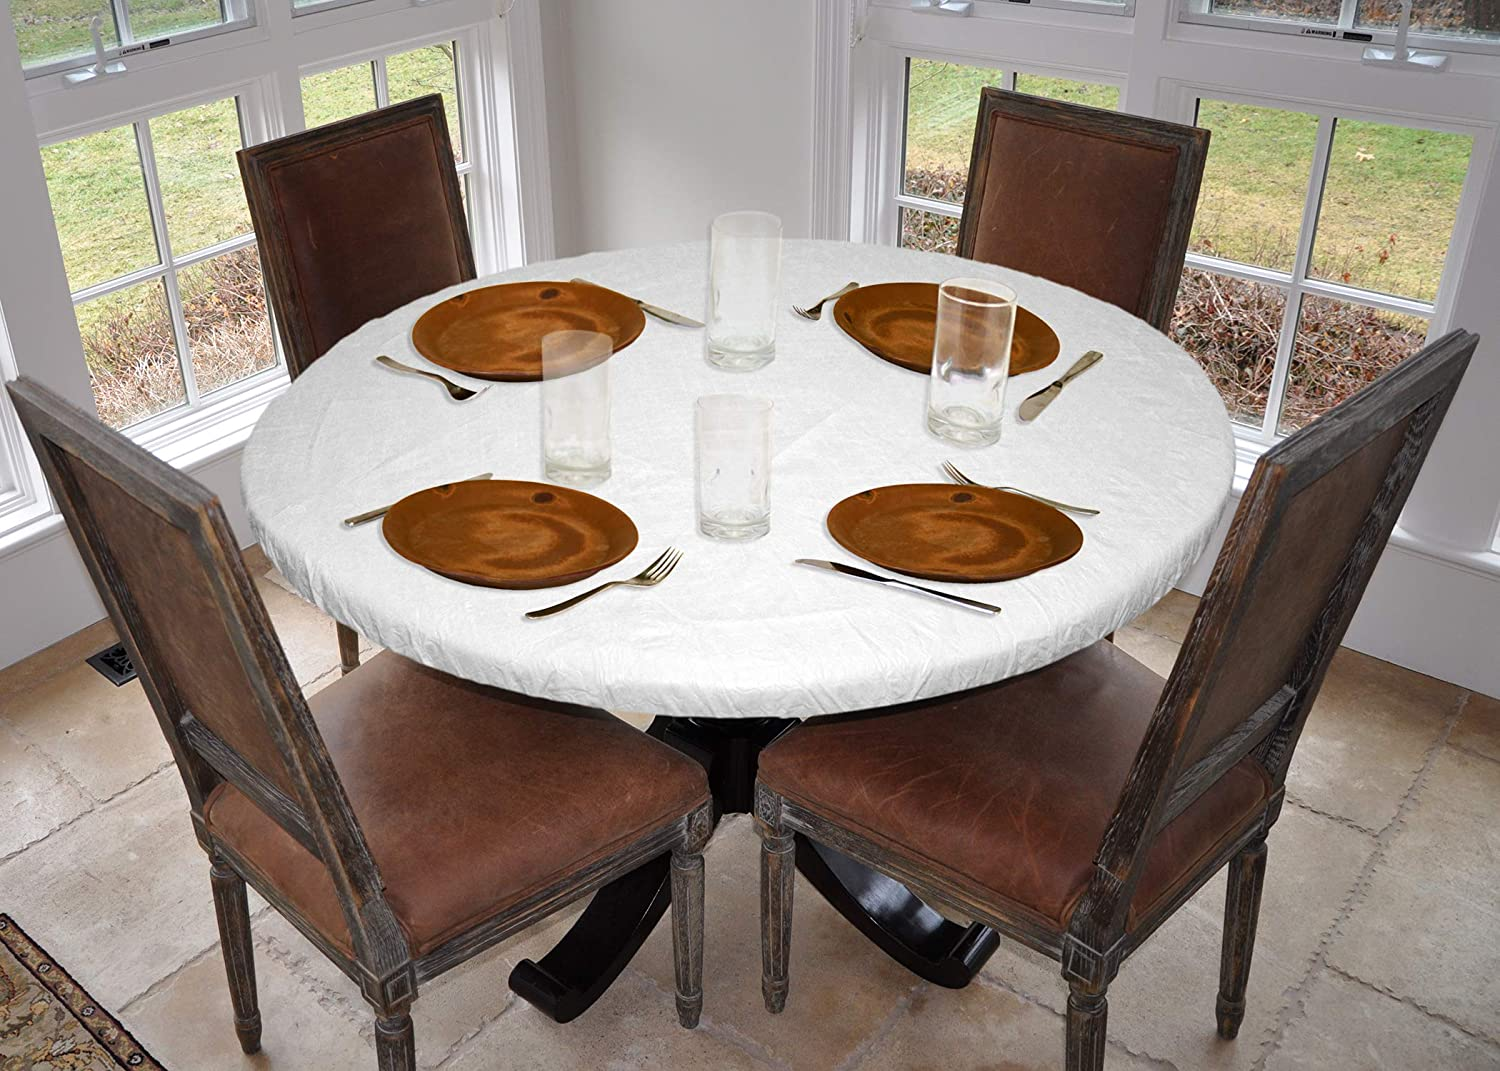 Amazon Com Laminet Deluxe Cushioned Heavy Duty Elastic Edged Quilted Table Pad Small Round Fits Tables Up To 44 Diameter The Ultimate Protection For Your Table Kitchen Dining